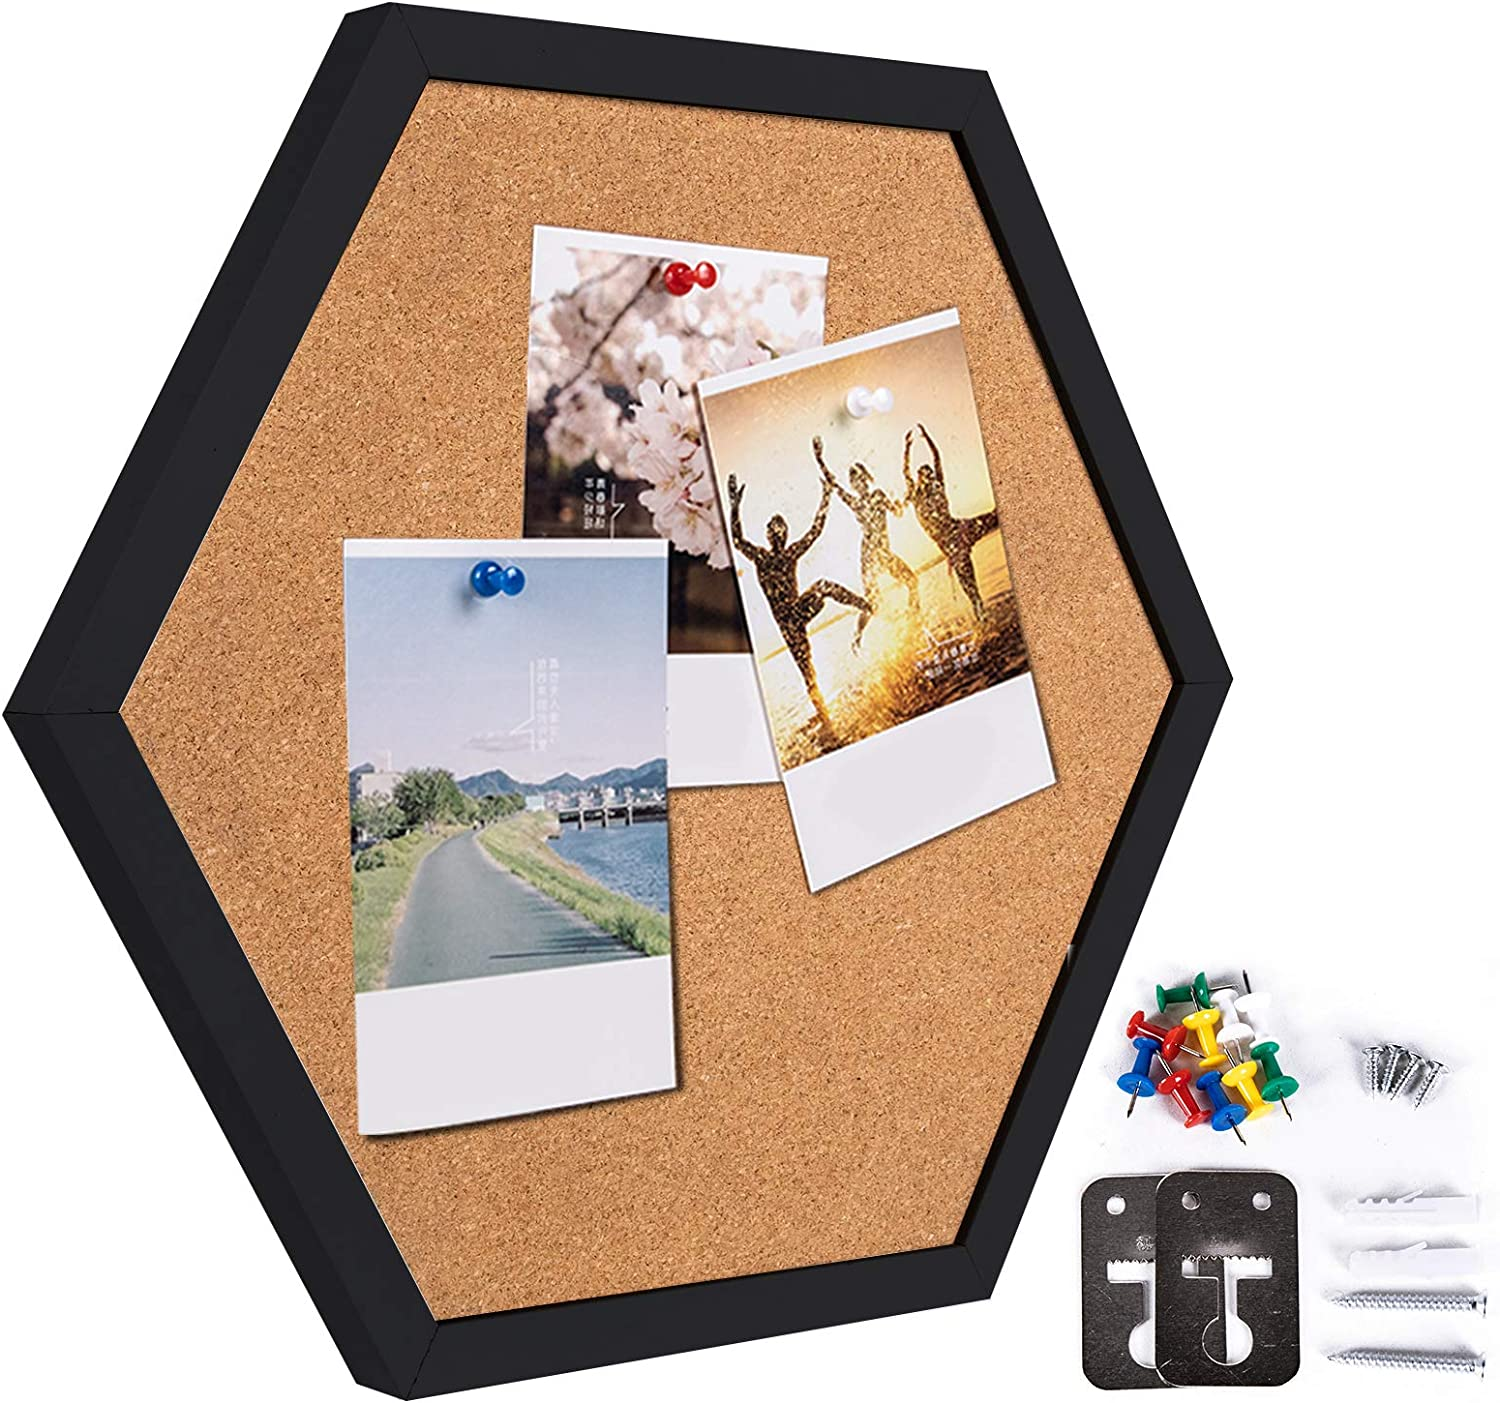 CRCHOM Cork Board Hexagon Framed Bulletin Board Thick Wall Tiles, Black Wooden Framed Message Tackboard for Home,Office and School(Set Including 10 Push Pins, Hardware )